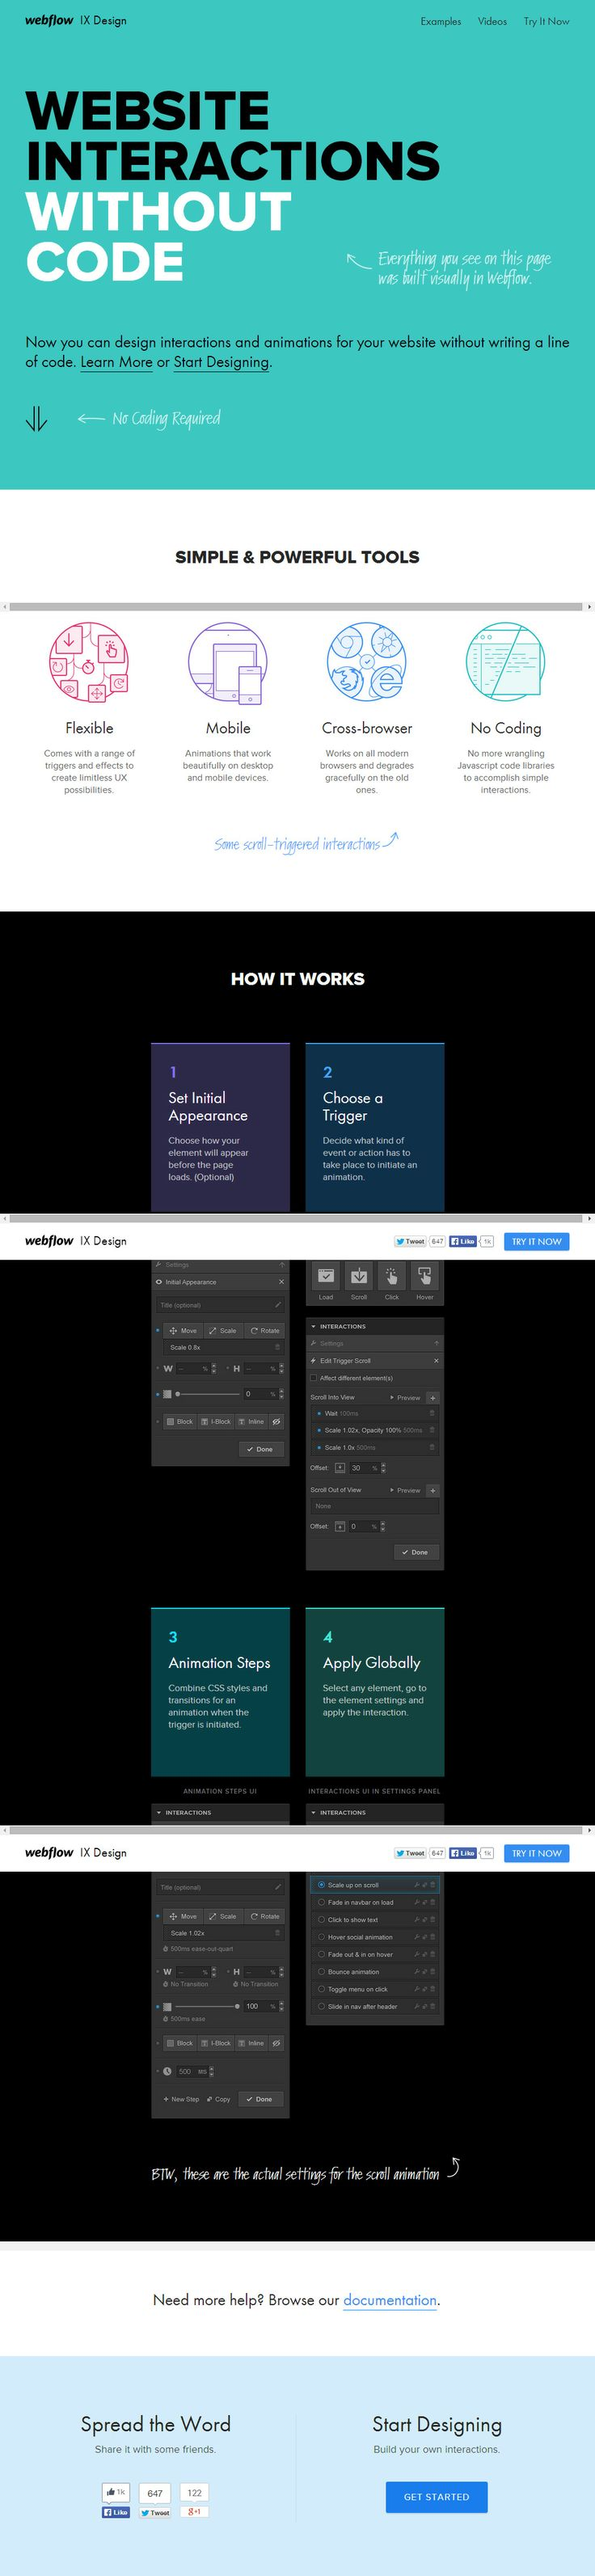 Webflow Interactions - create beautiful interactions and animations without messing with Javascript or jQuery.